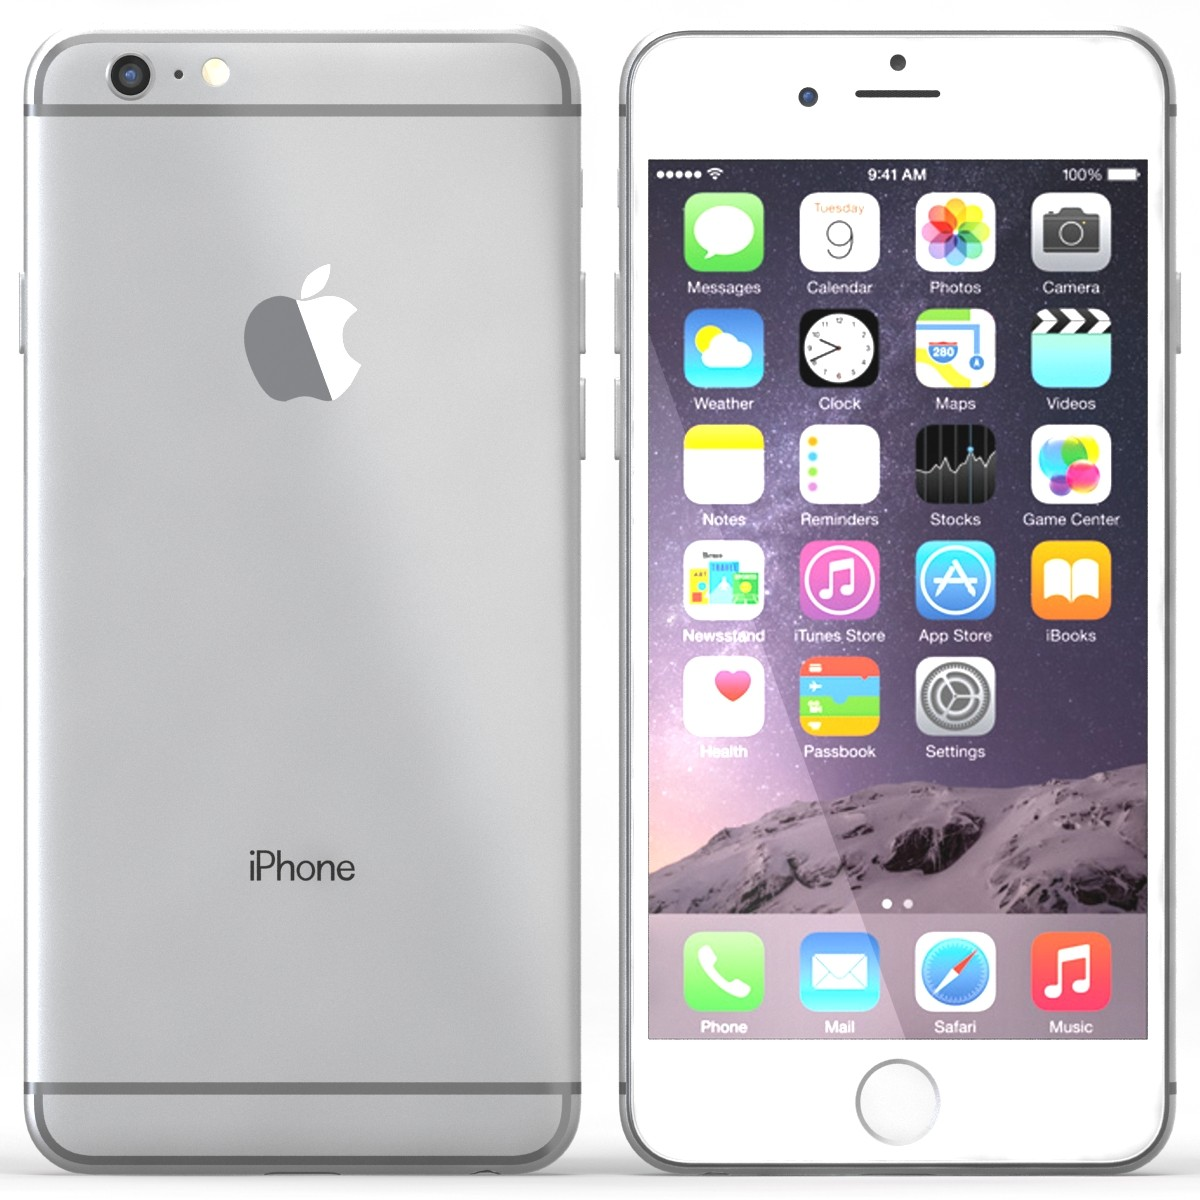 Apple iPhone 6 Plus 128GB Smartphone - Unlocked - Silver